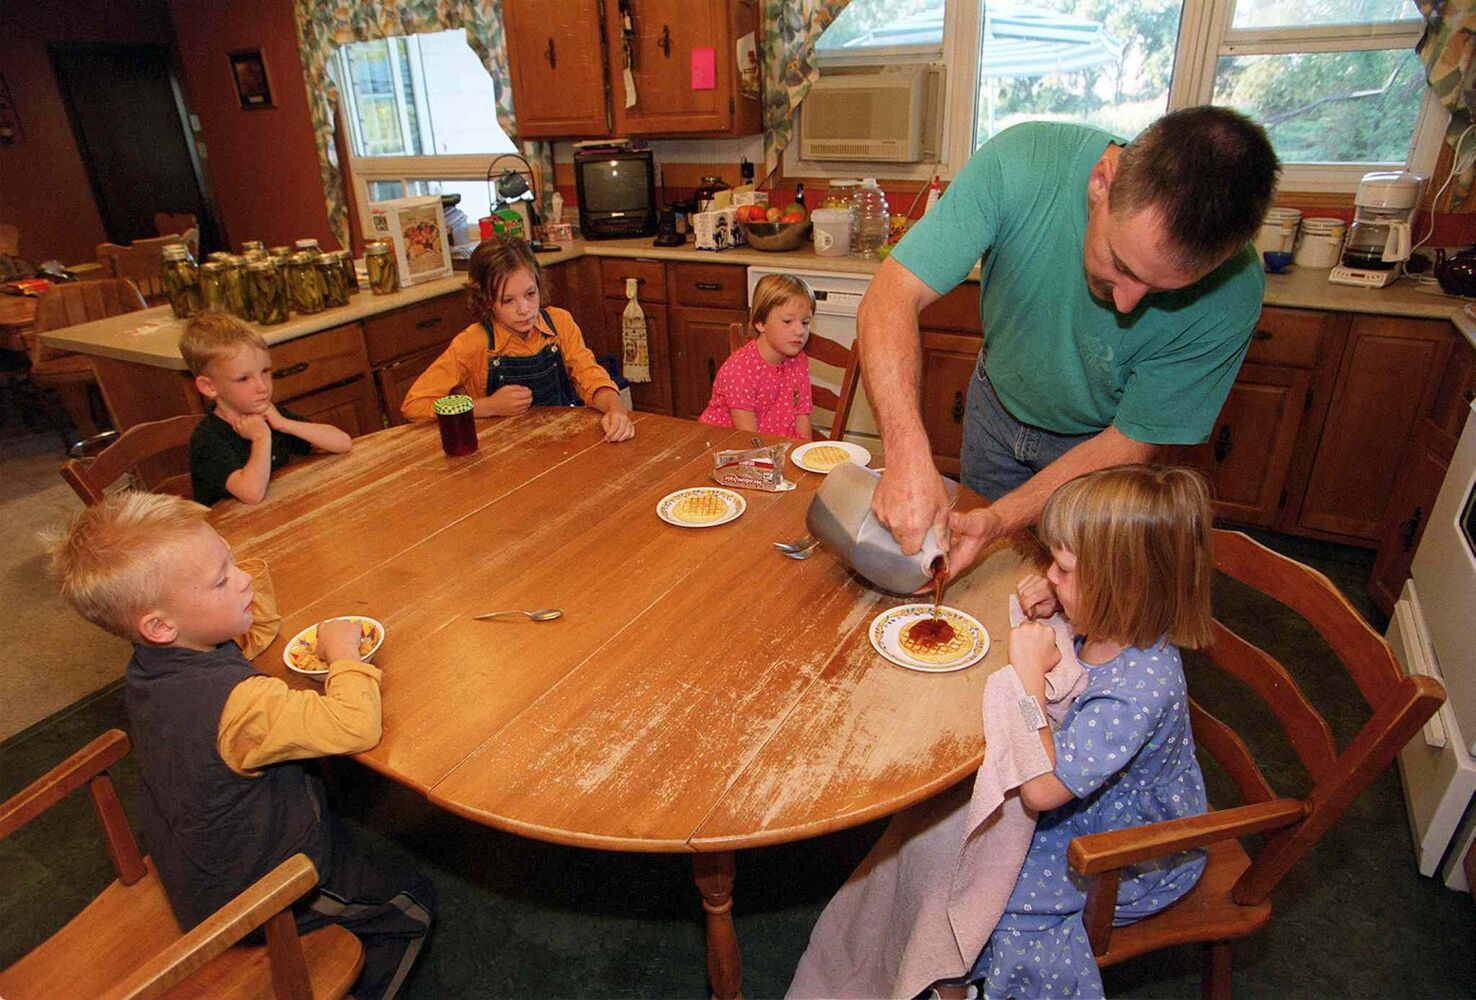 Ed Lavich pours syrup on his daughter Maryn's waffle on the morning of the children's first day of kindergarten. (JEFF DE BOOY / WINNIPEG FREE PRESS files)